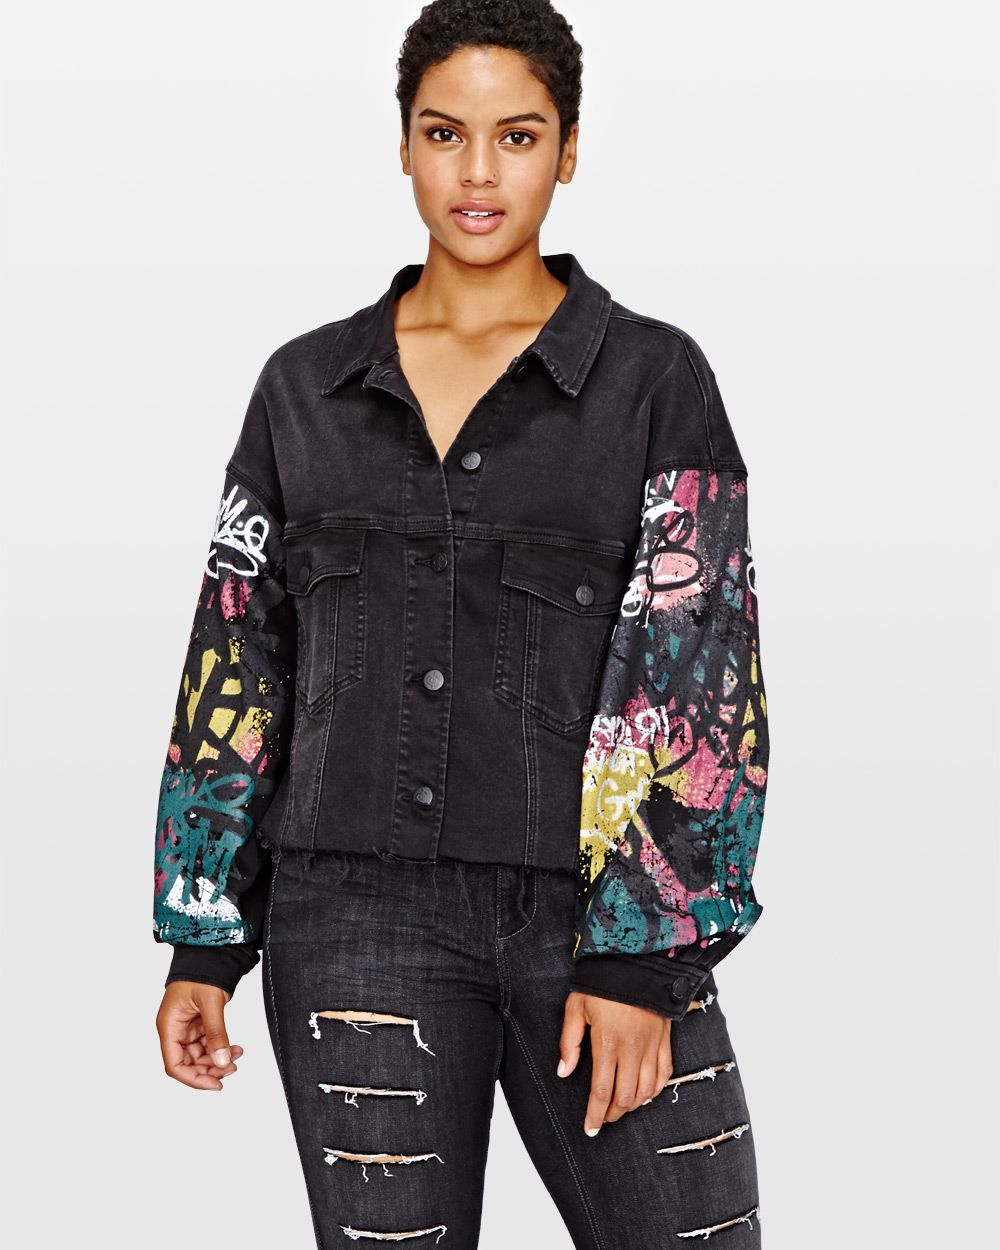 99ccbf3047971 L L Cropped Denim Jacket with Graffiti Print